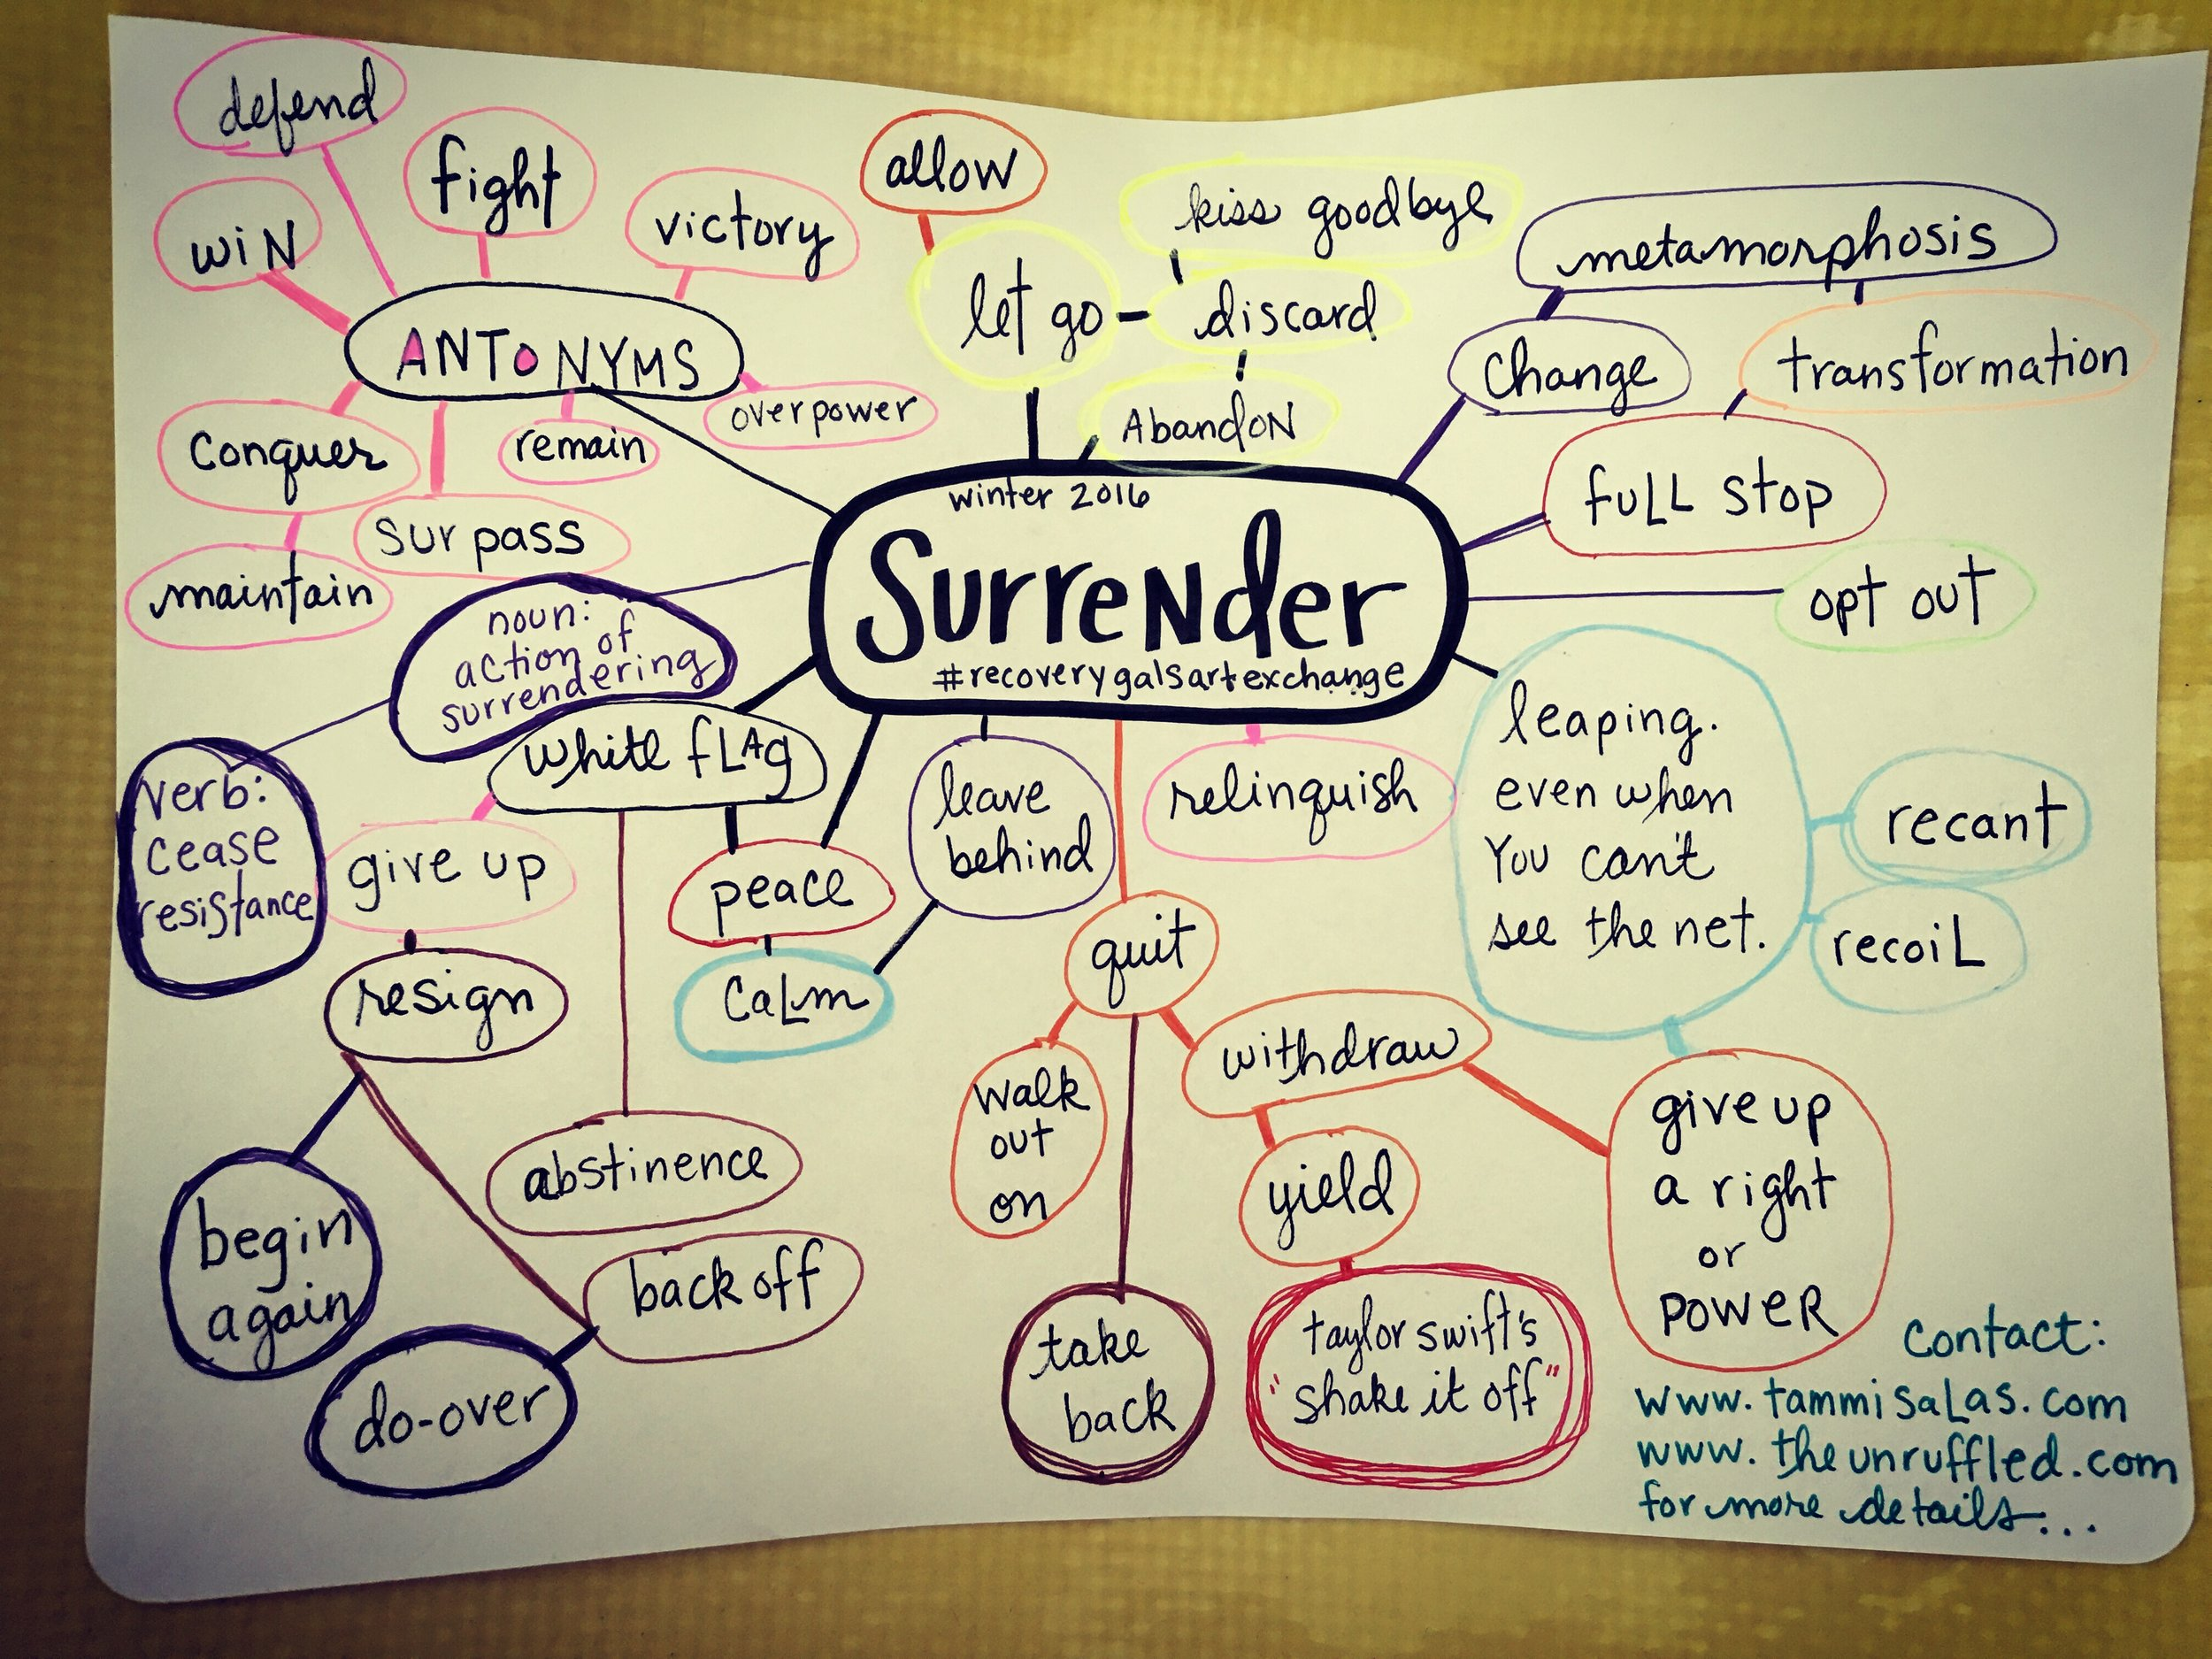 My version of creative mind-mapping for the theme of Surrender